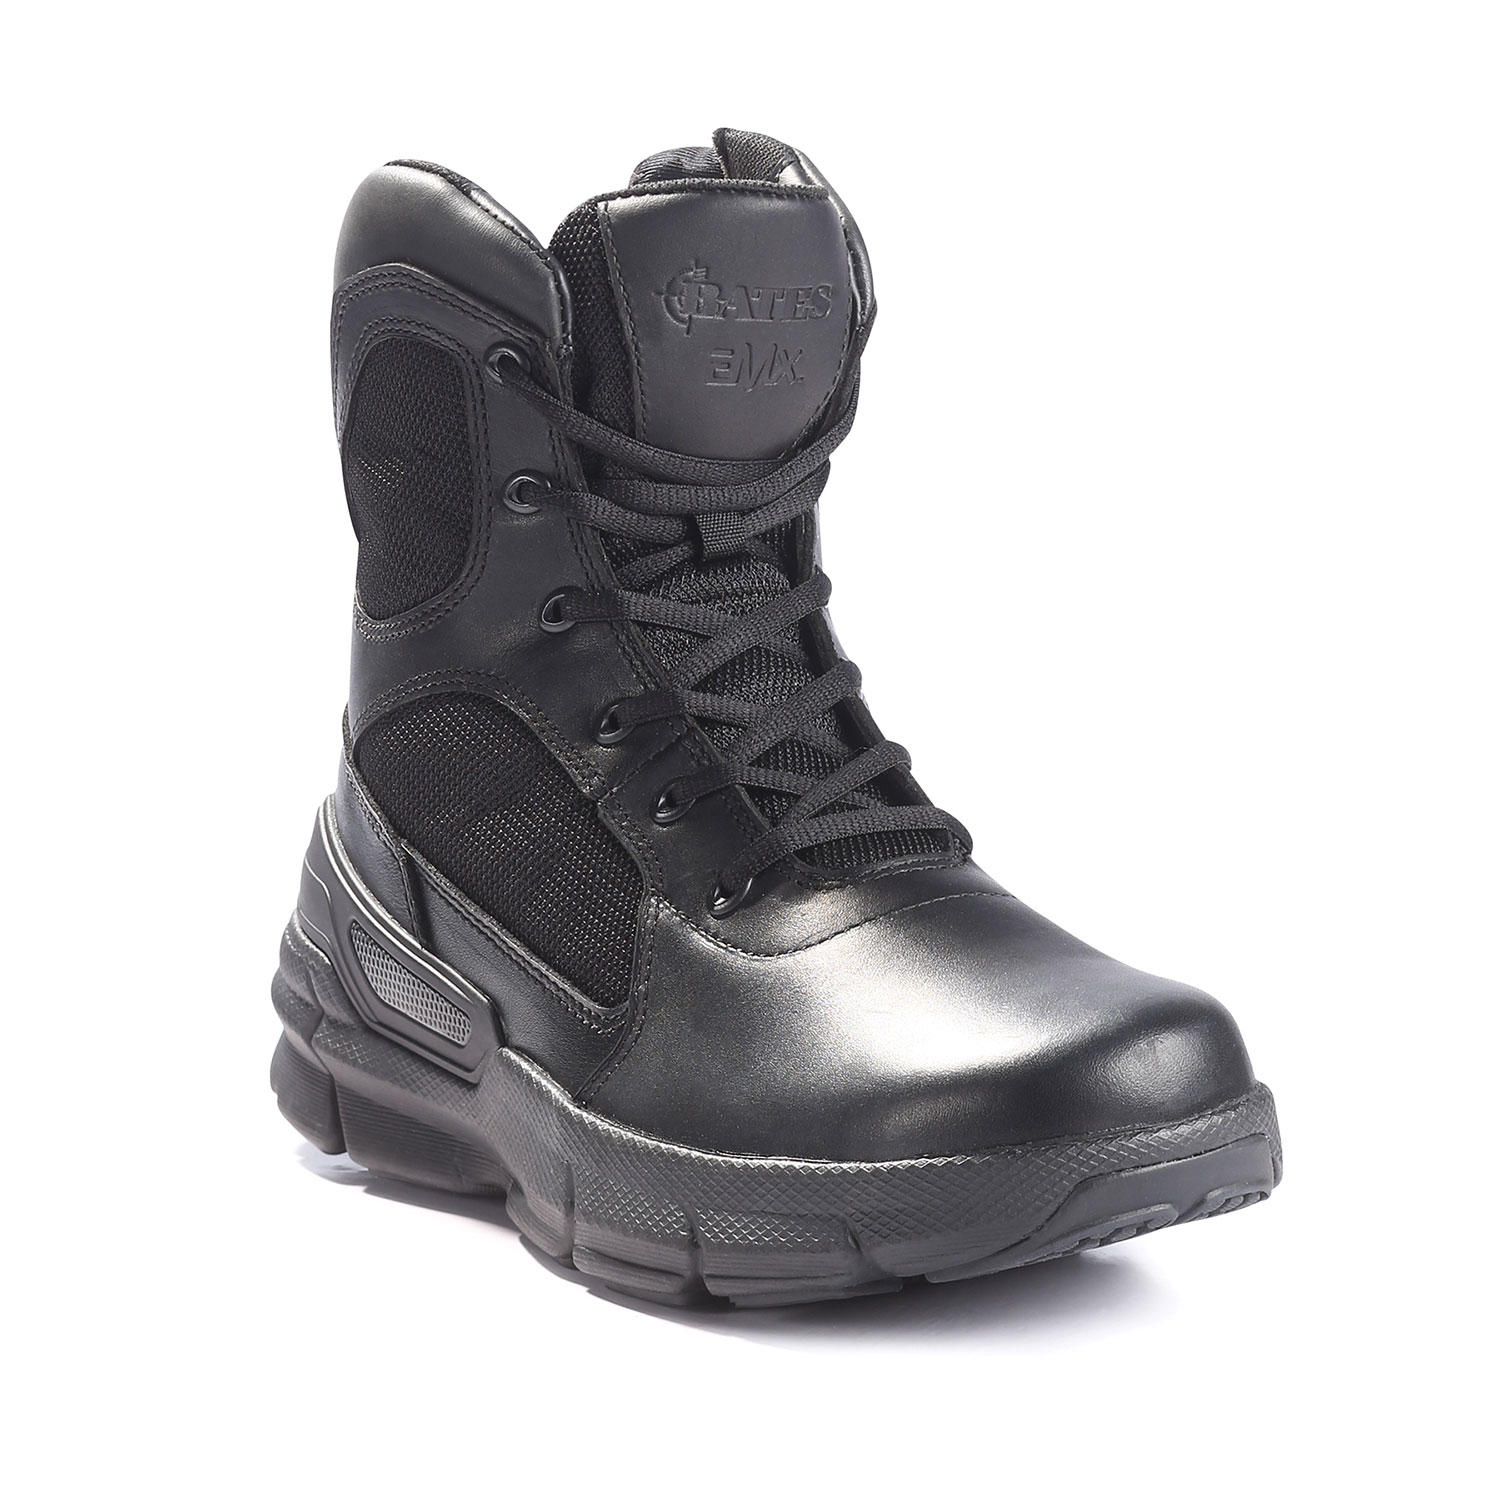 "Bates Charge 8"" Side Zip Boot with EMX Technology"